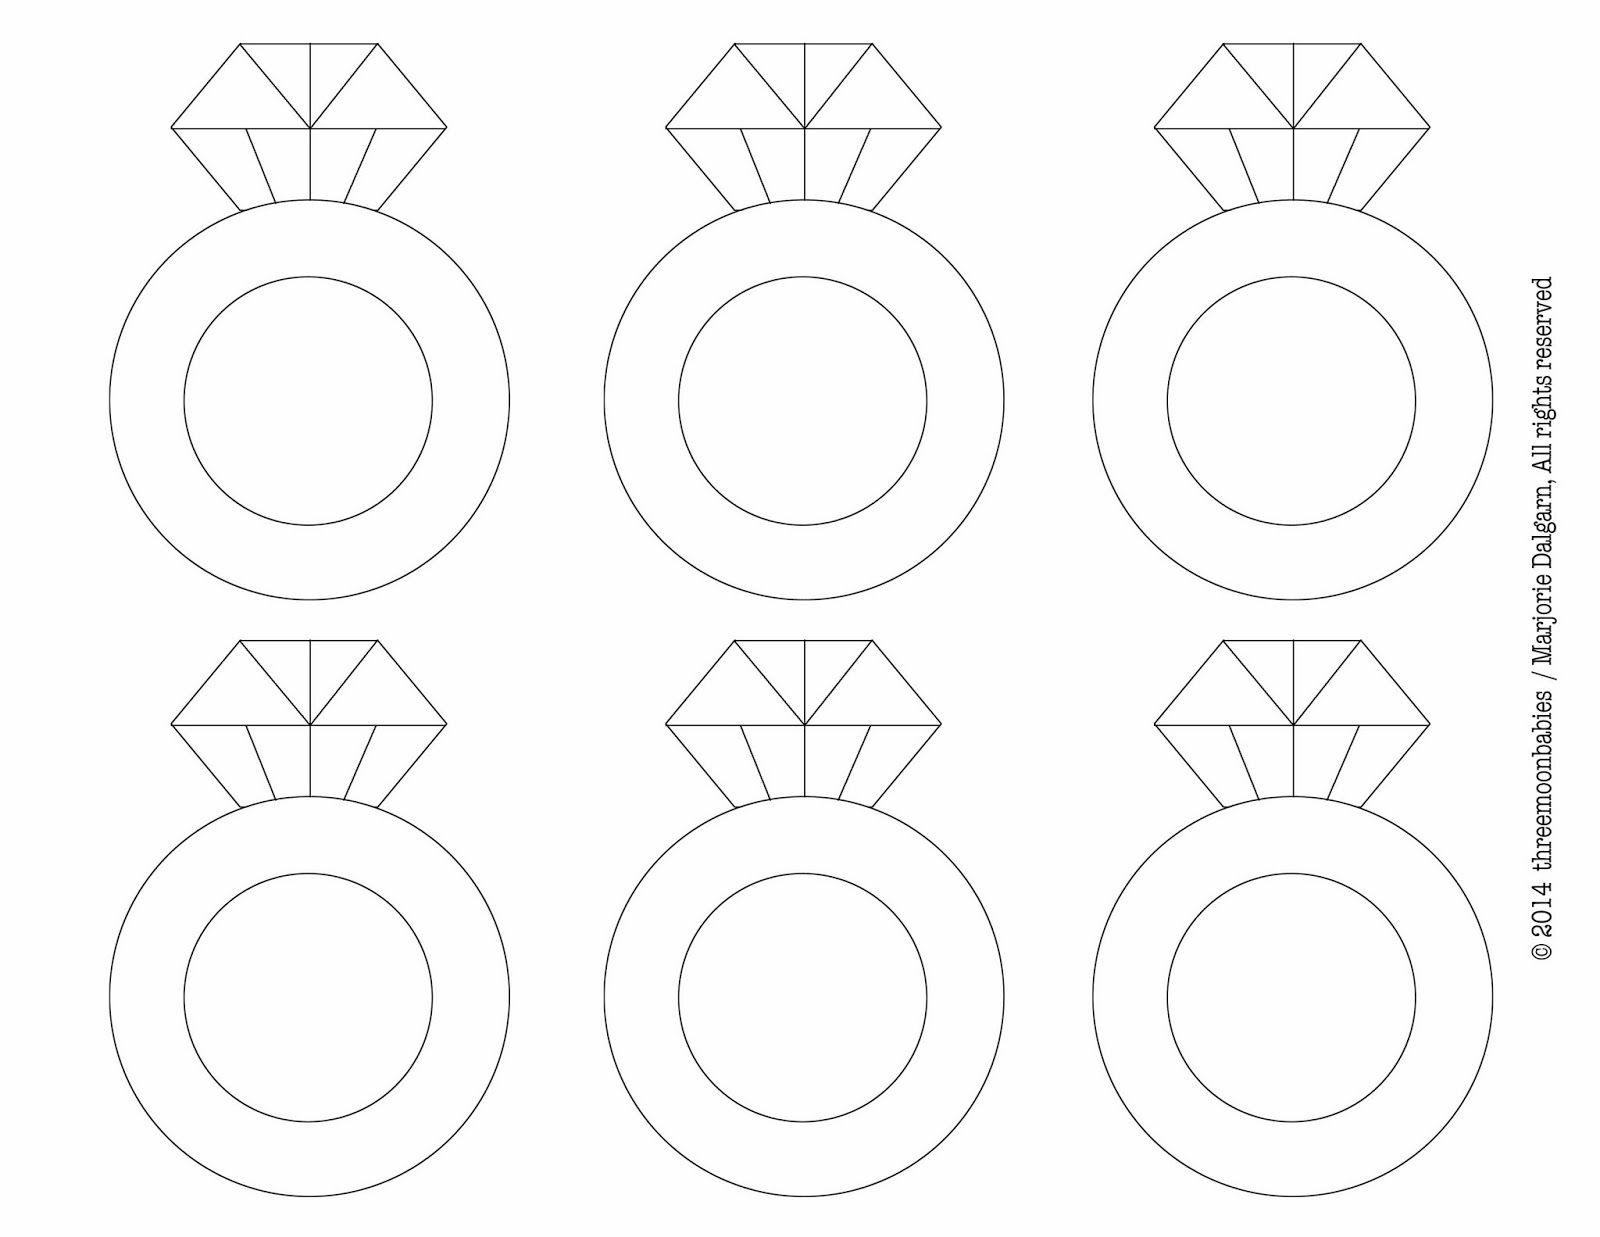 Diamond Drawing Template At Getdrawings